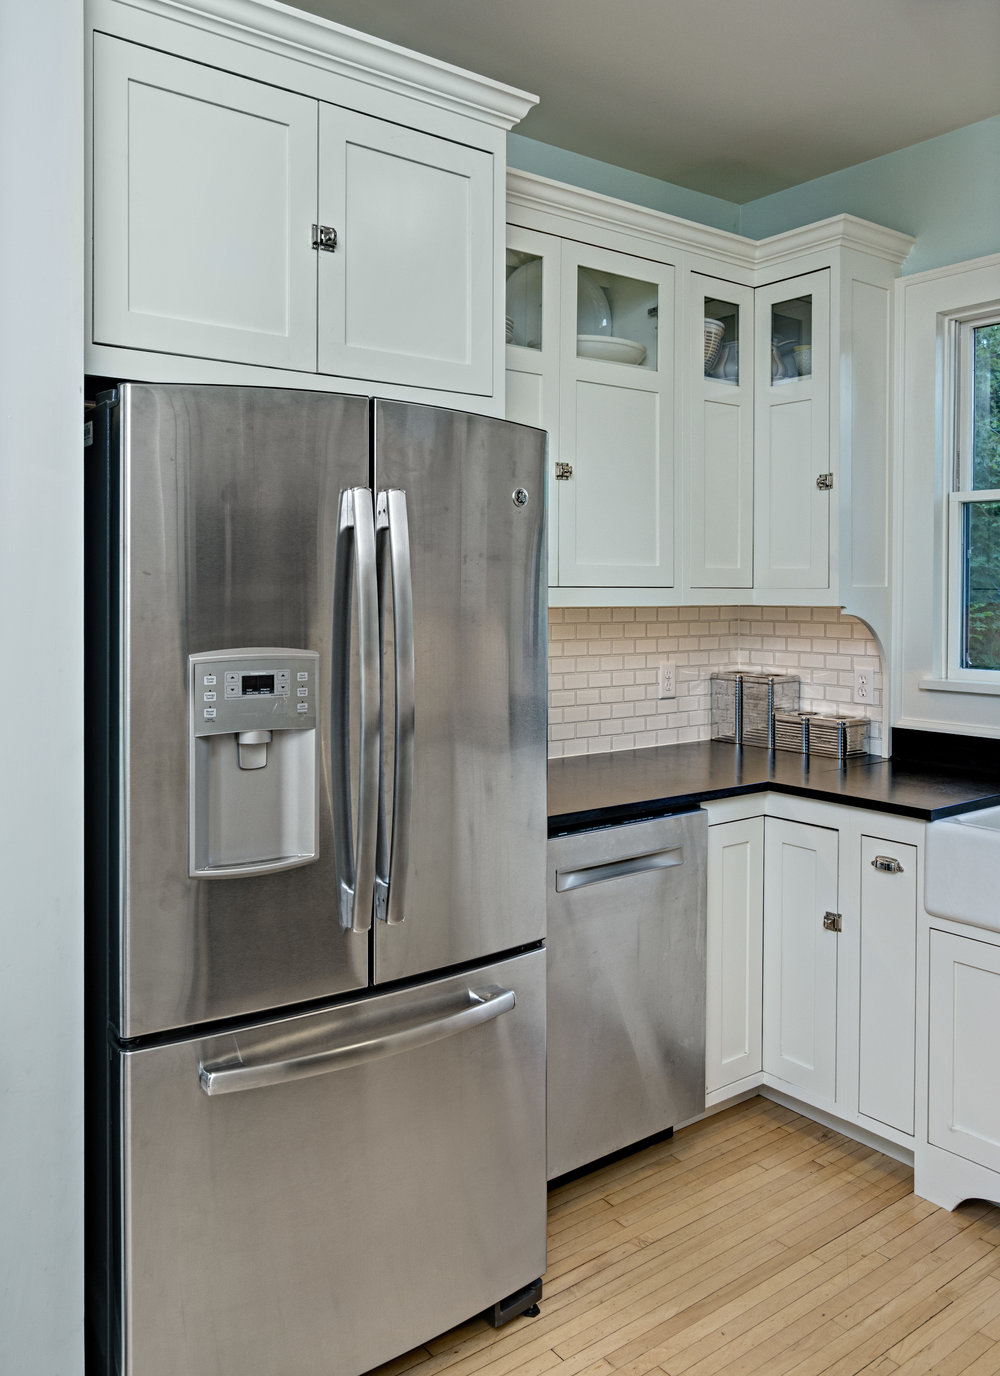 A new layout, custom white Shaker-style cabinets and black PaperStone counters blended new with old seamlessly.